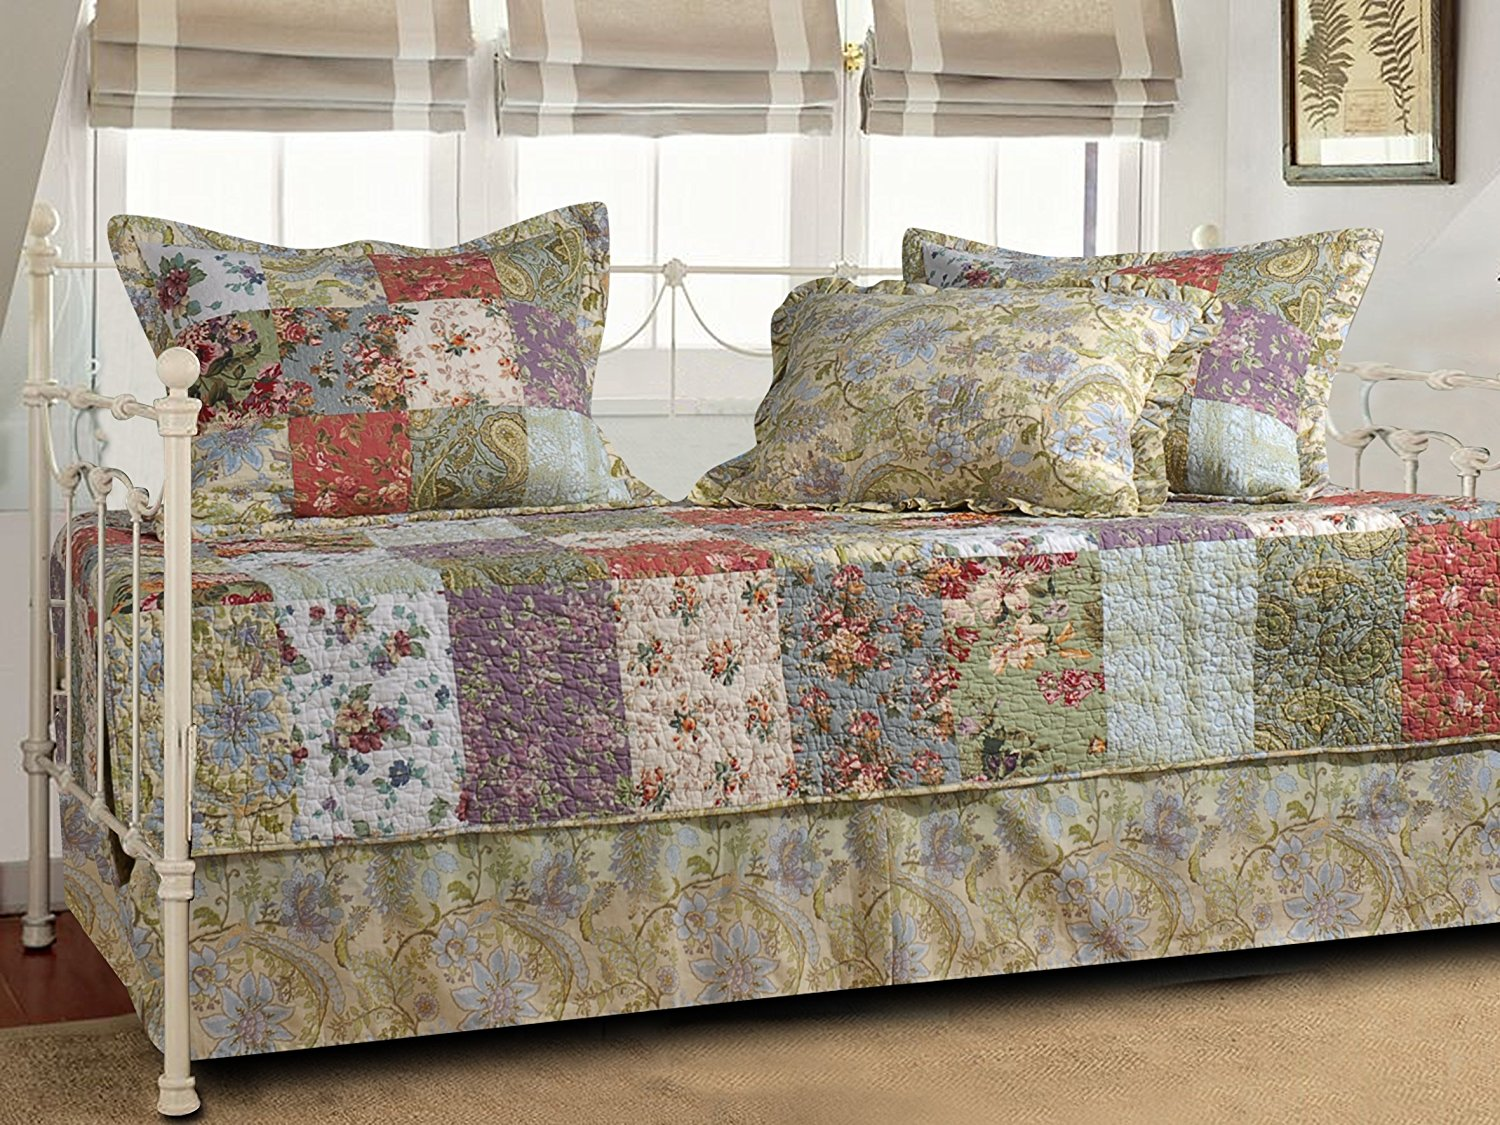 5. Greenland Home Blooming Prairie Daybed Set